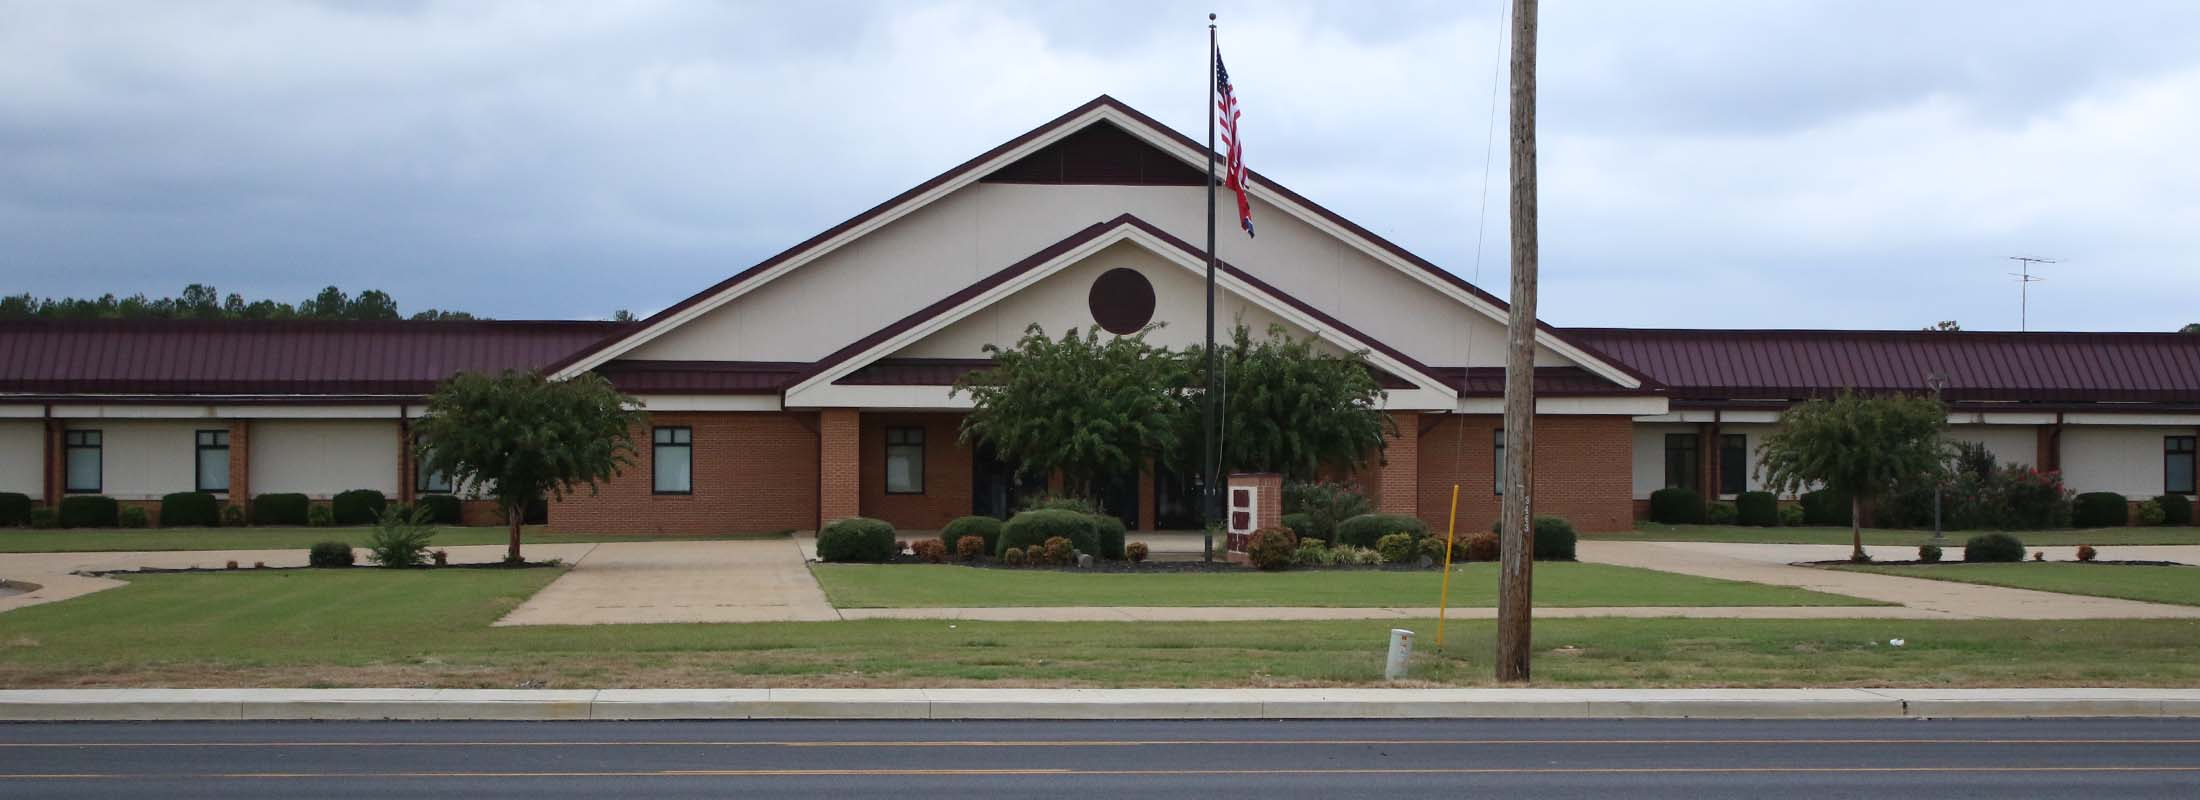 hardin county high school front entrance